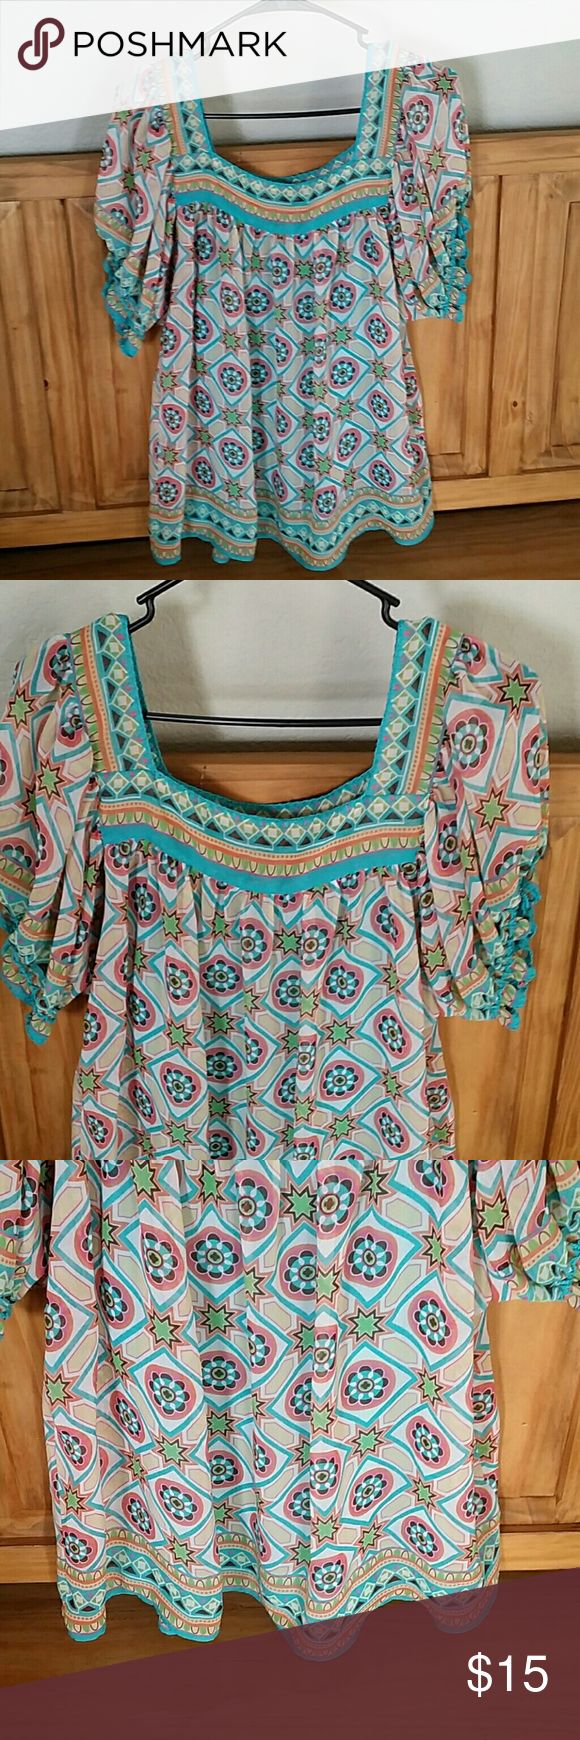 Gorgeous multicolored blouse This top is so comfortable and pretty.  Turquoise, peach, green, yellow, pink somewhat of an Aztec or tribal print.  Has a coordinating blue cami.  Fabric is super soft and flowy. Nicole by Nicole Miller Tops Blouses